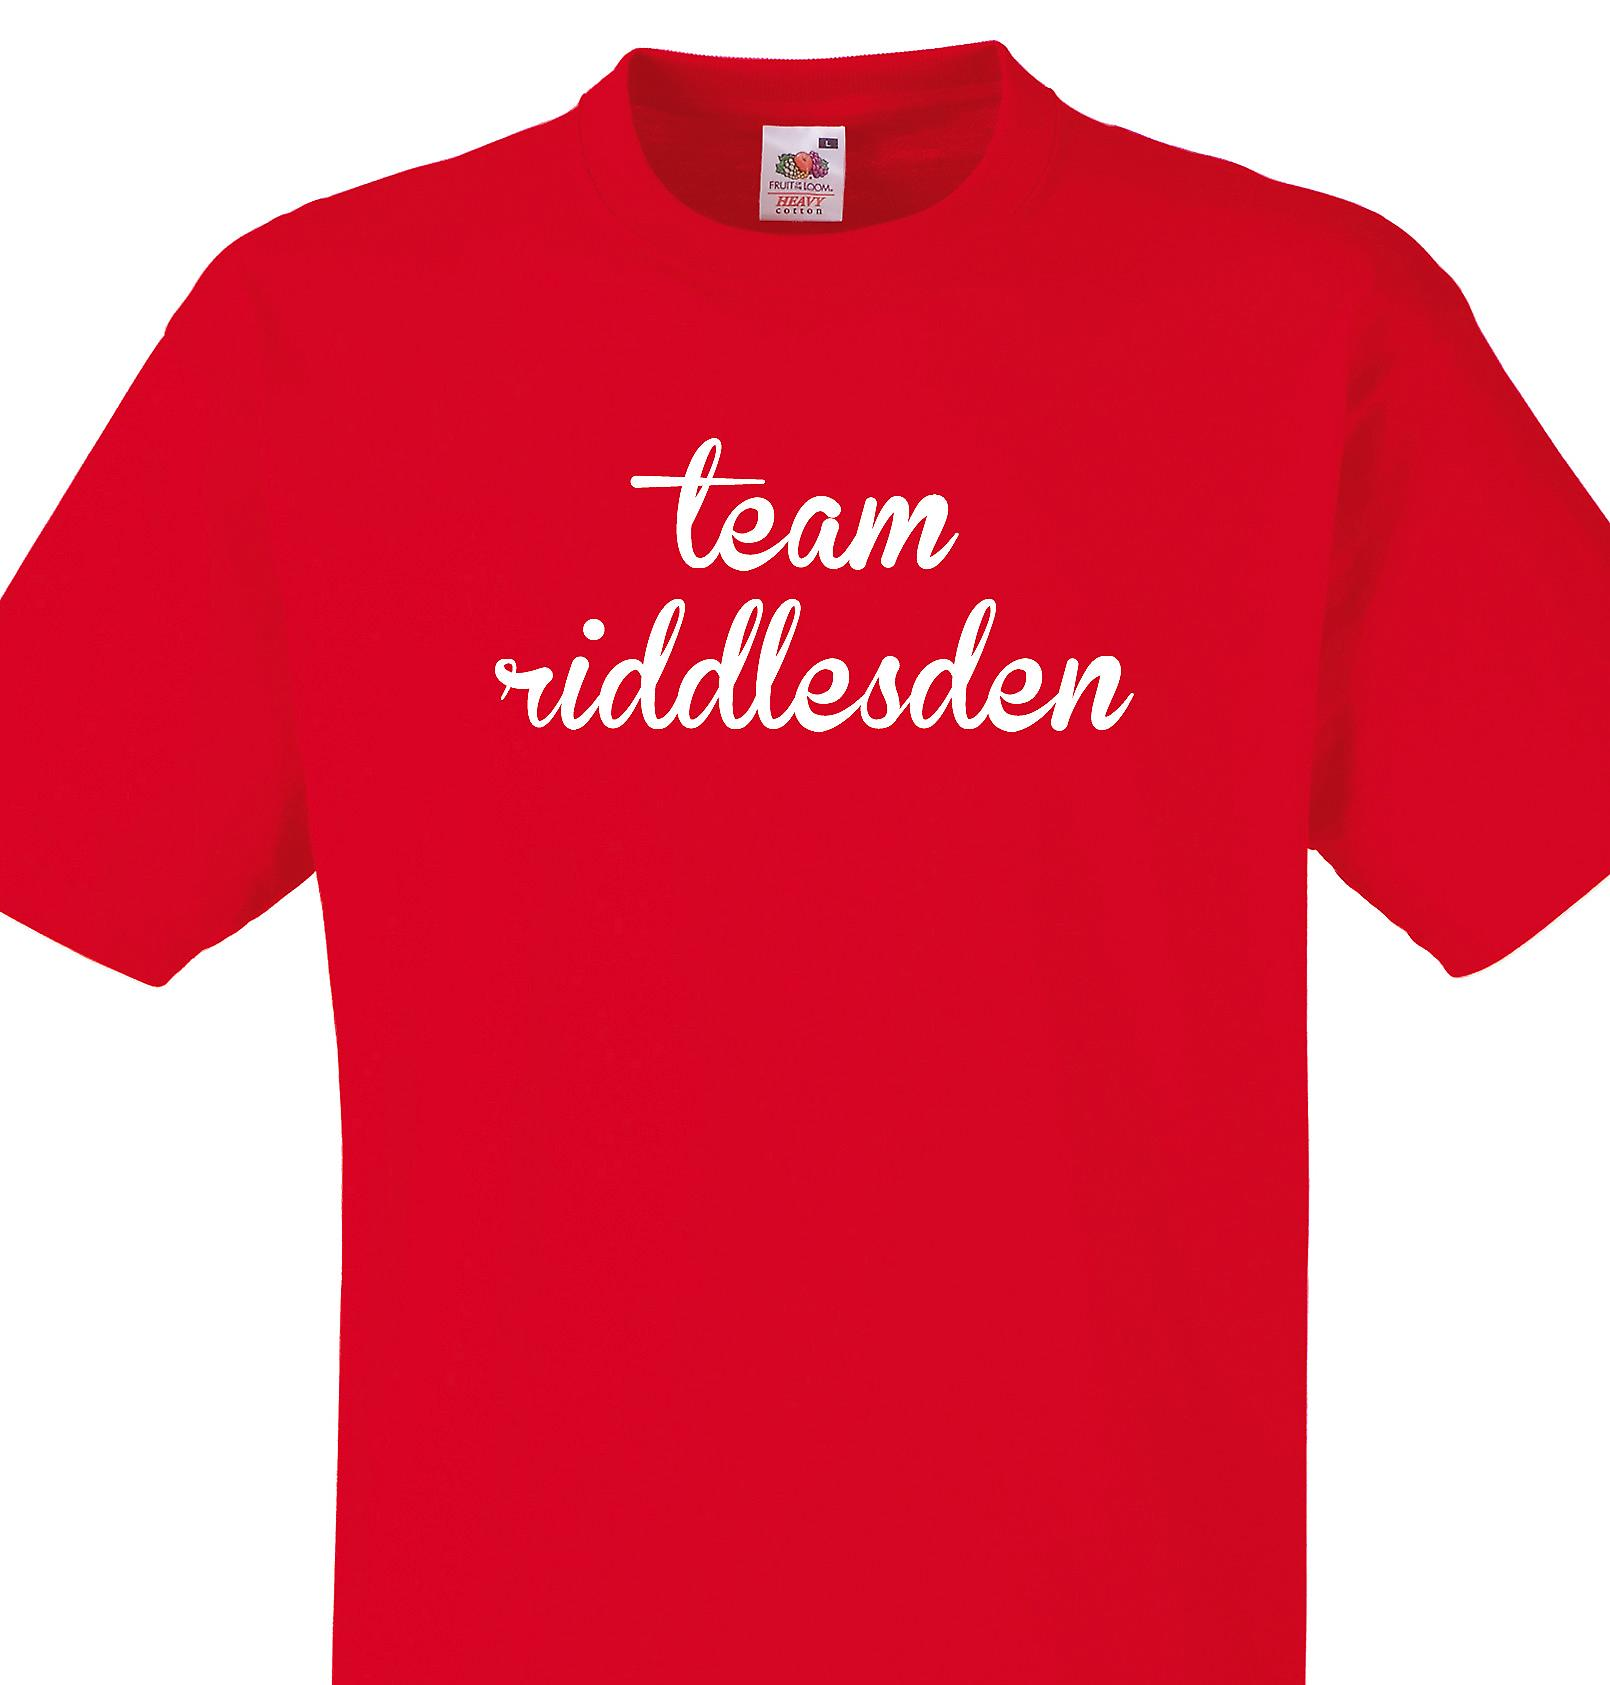 Team Riddlesden Red T shirt